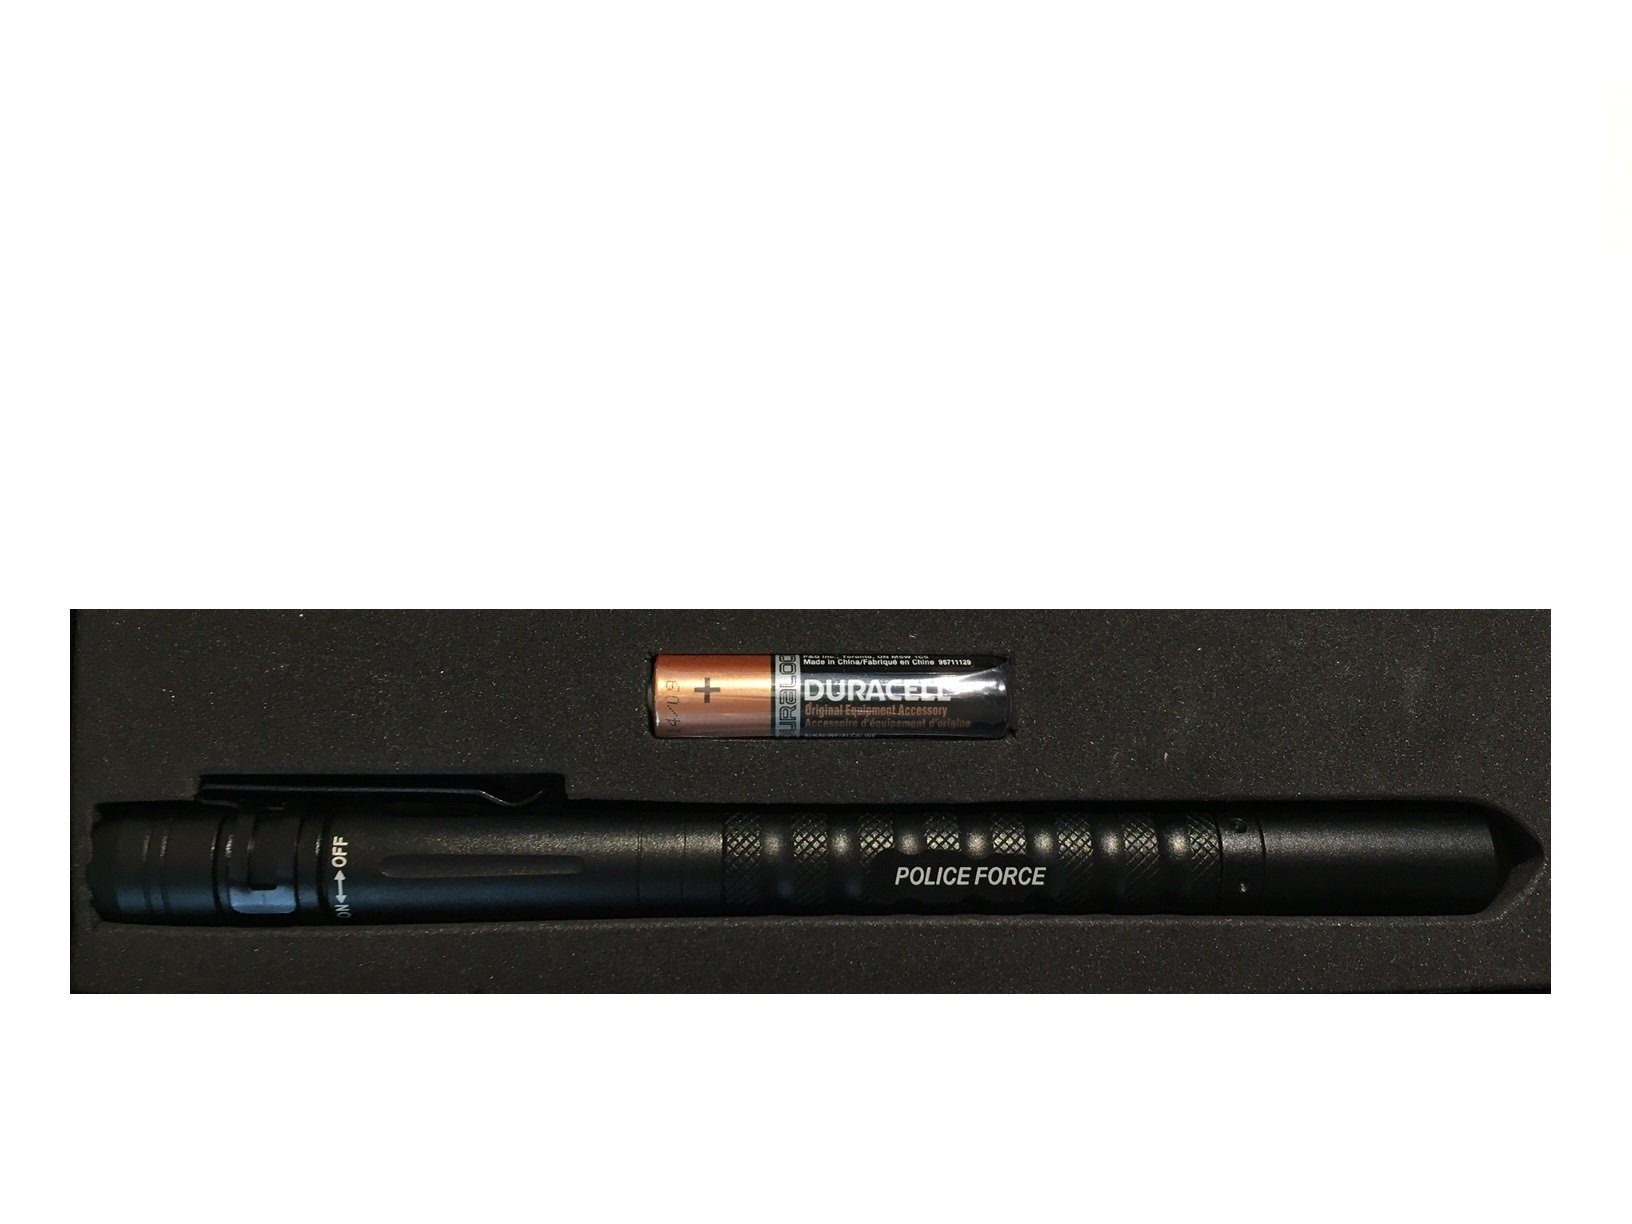 Streetwise Police Force Military Grade Tactical Pen with LED Light, DNA Tactical Edge, Water Resistant, Window Breaker, Kubotan Flashlight + AAA Battery Included for 100,000h LED Lifespan by Home Self Defense Products (Image #3)